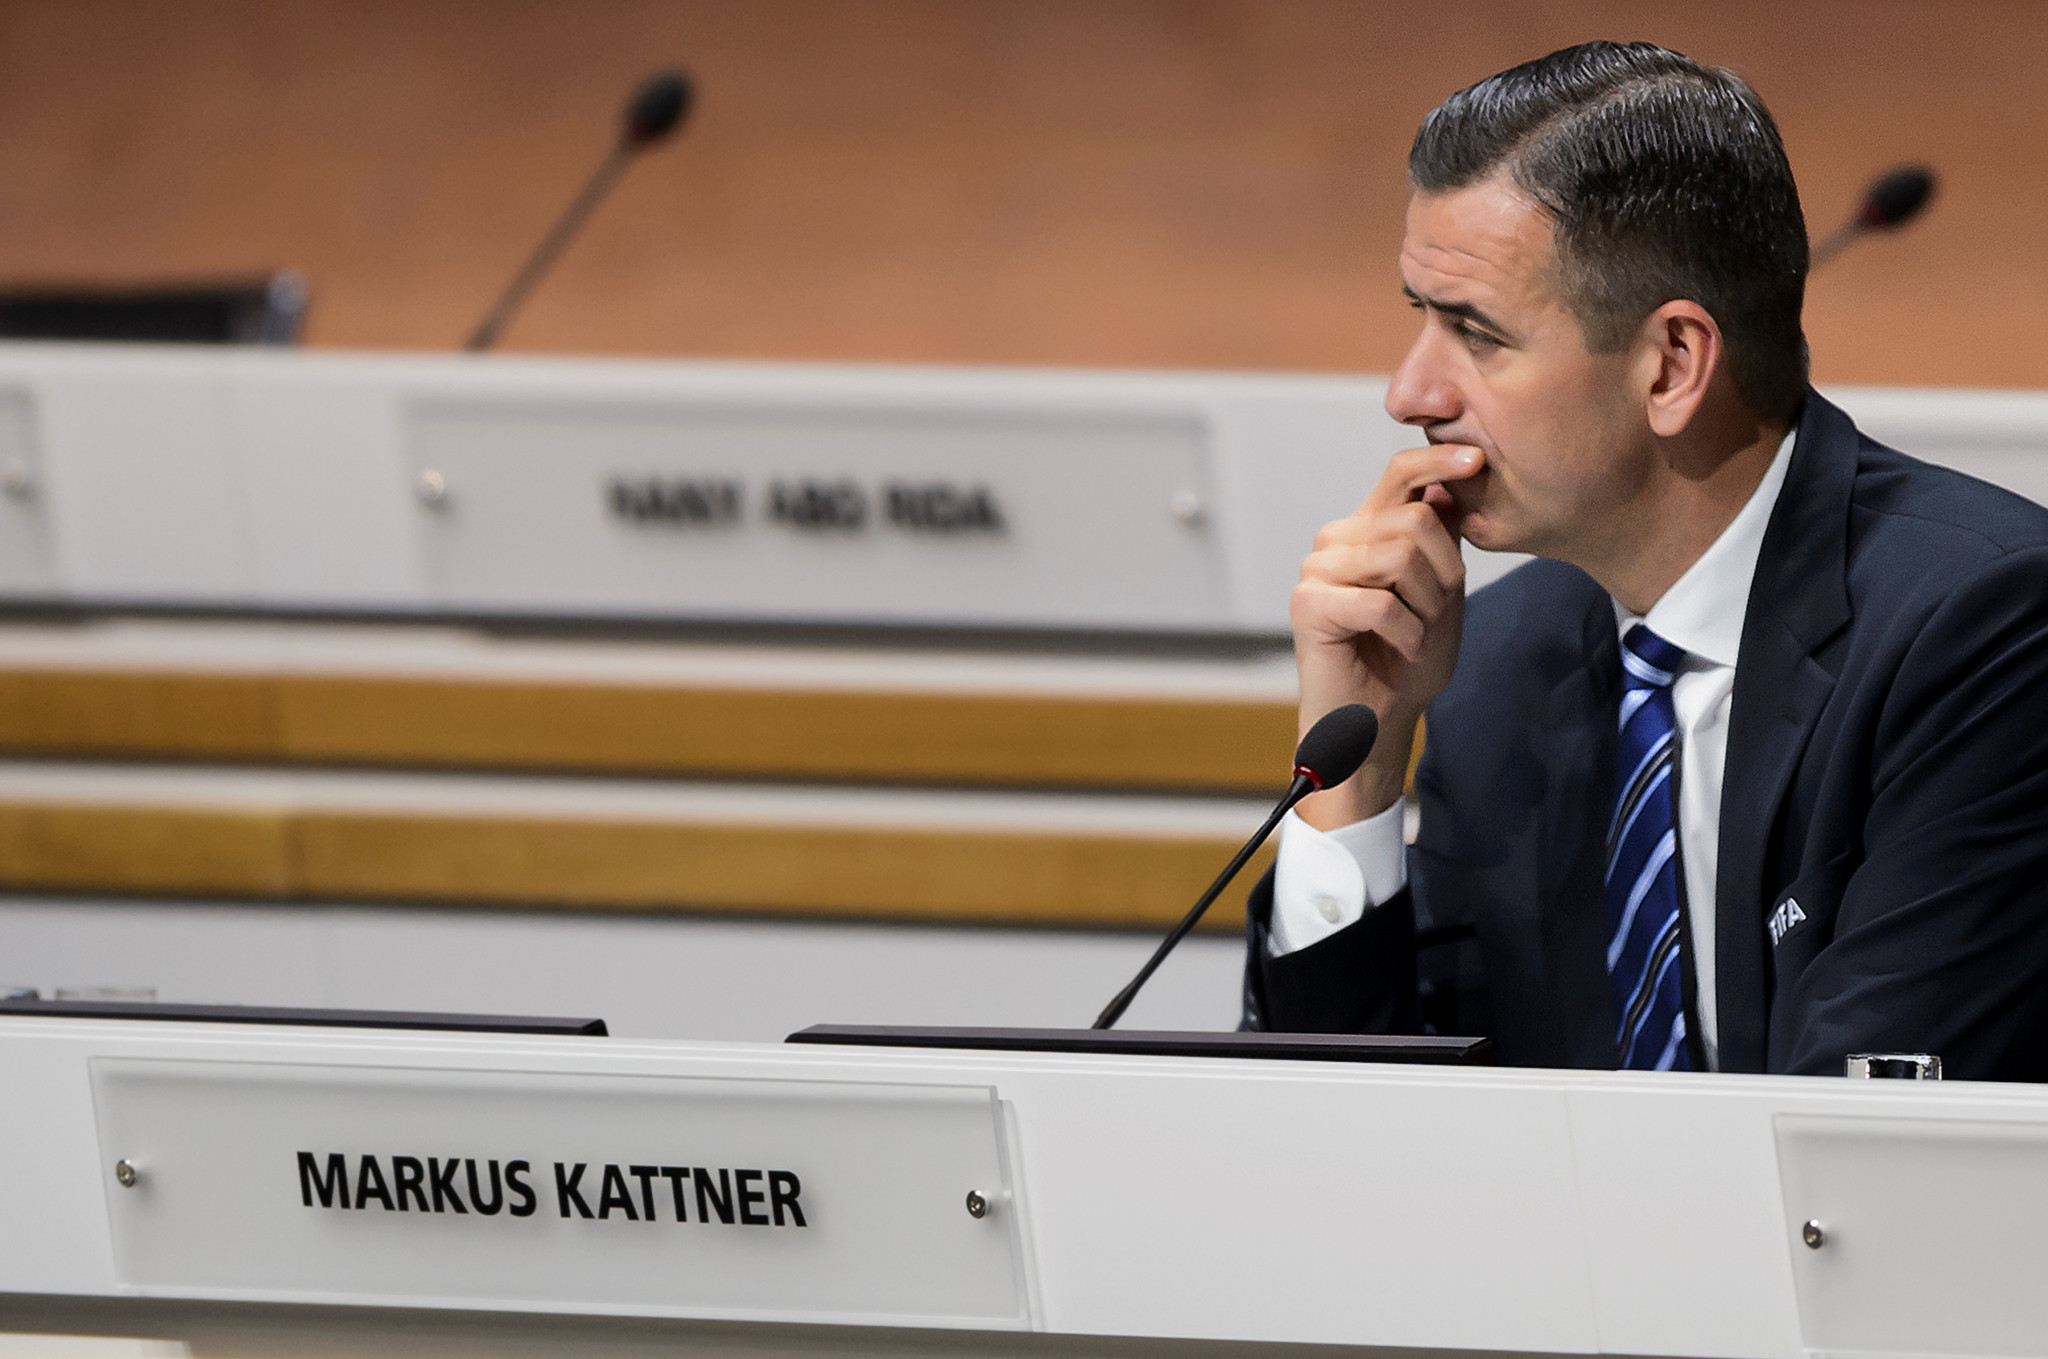 Markus Kattner was sacked by FIFA in 2016 and handed a 10-year ban in 2020 ©Getty Images